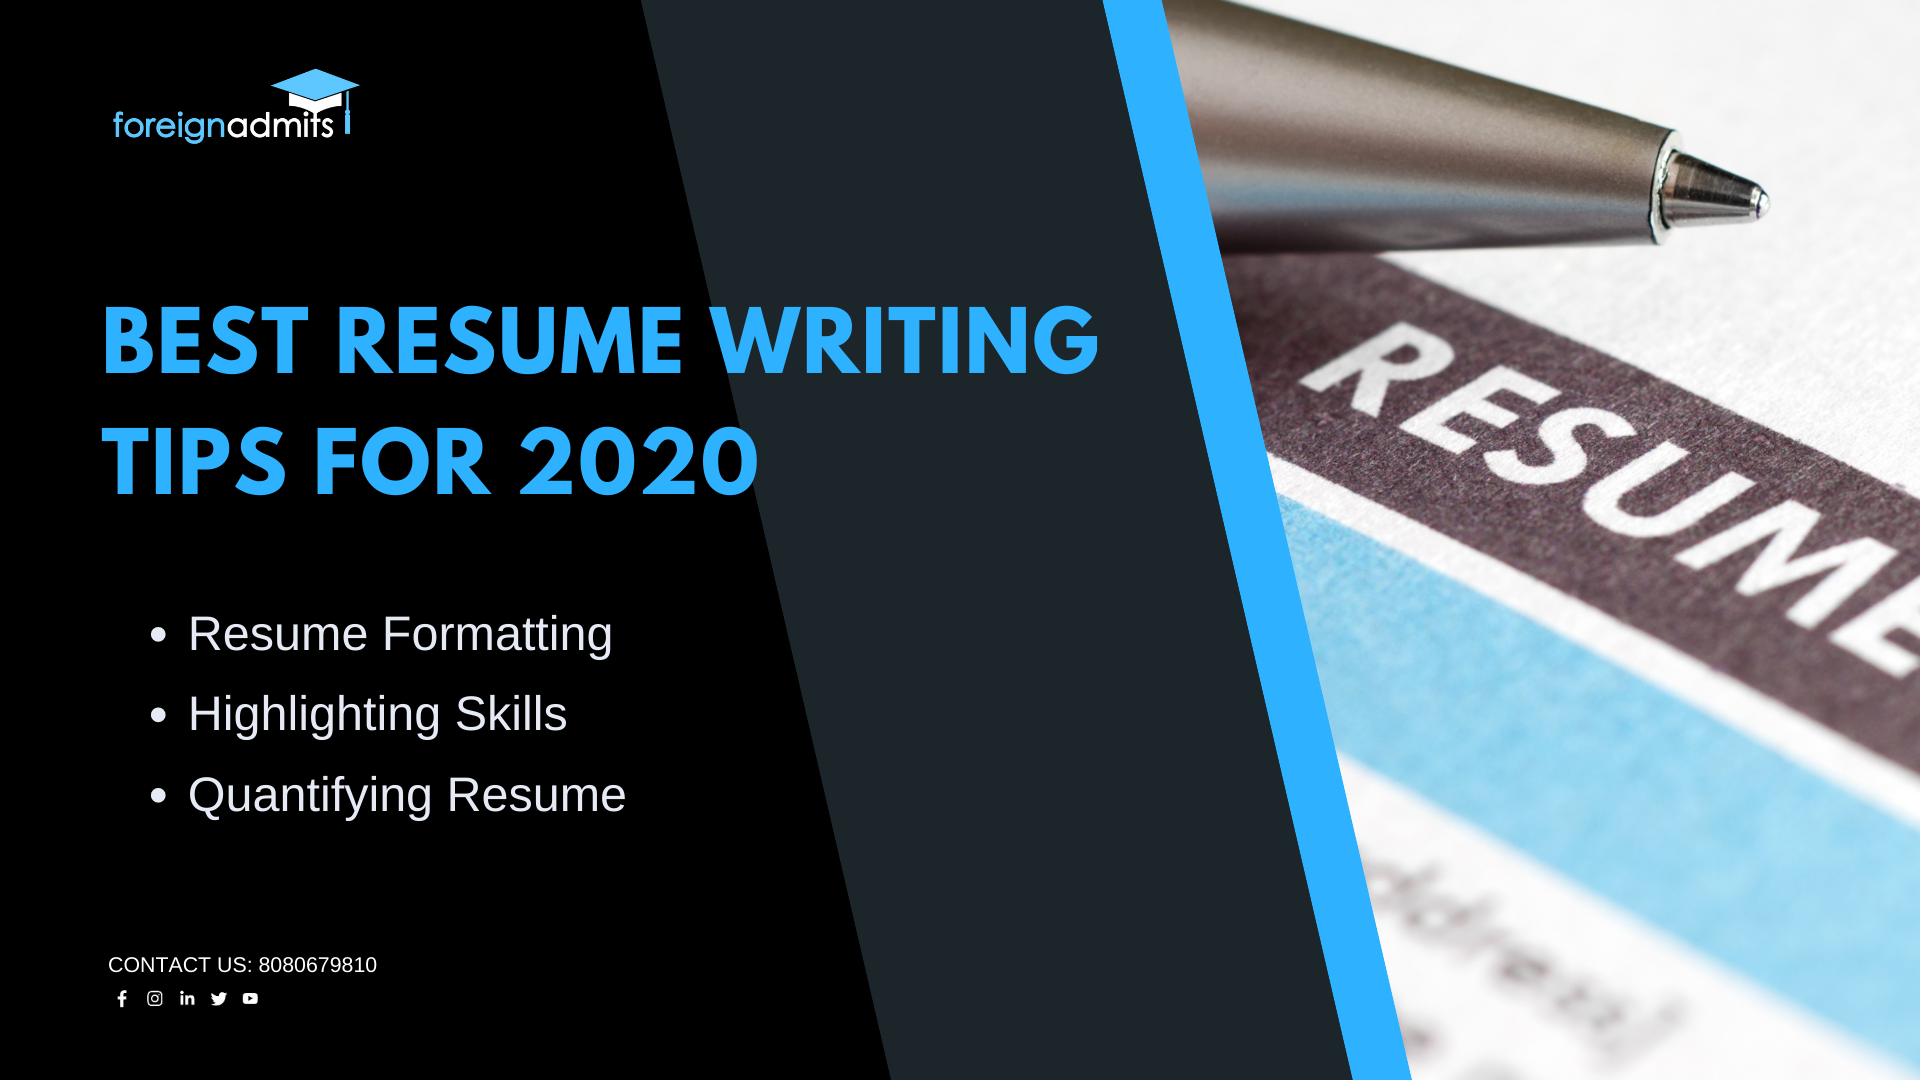 Best Resume Writing Tips For 2020